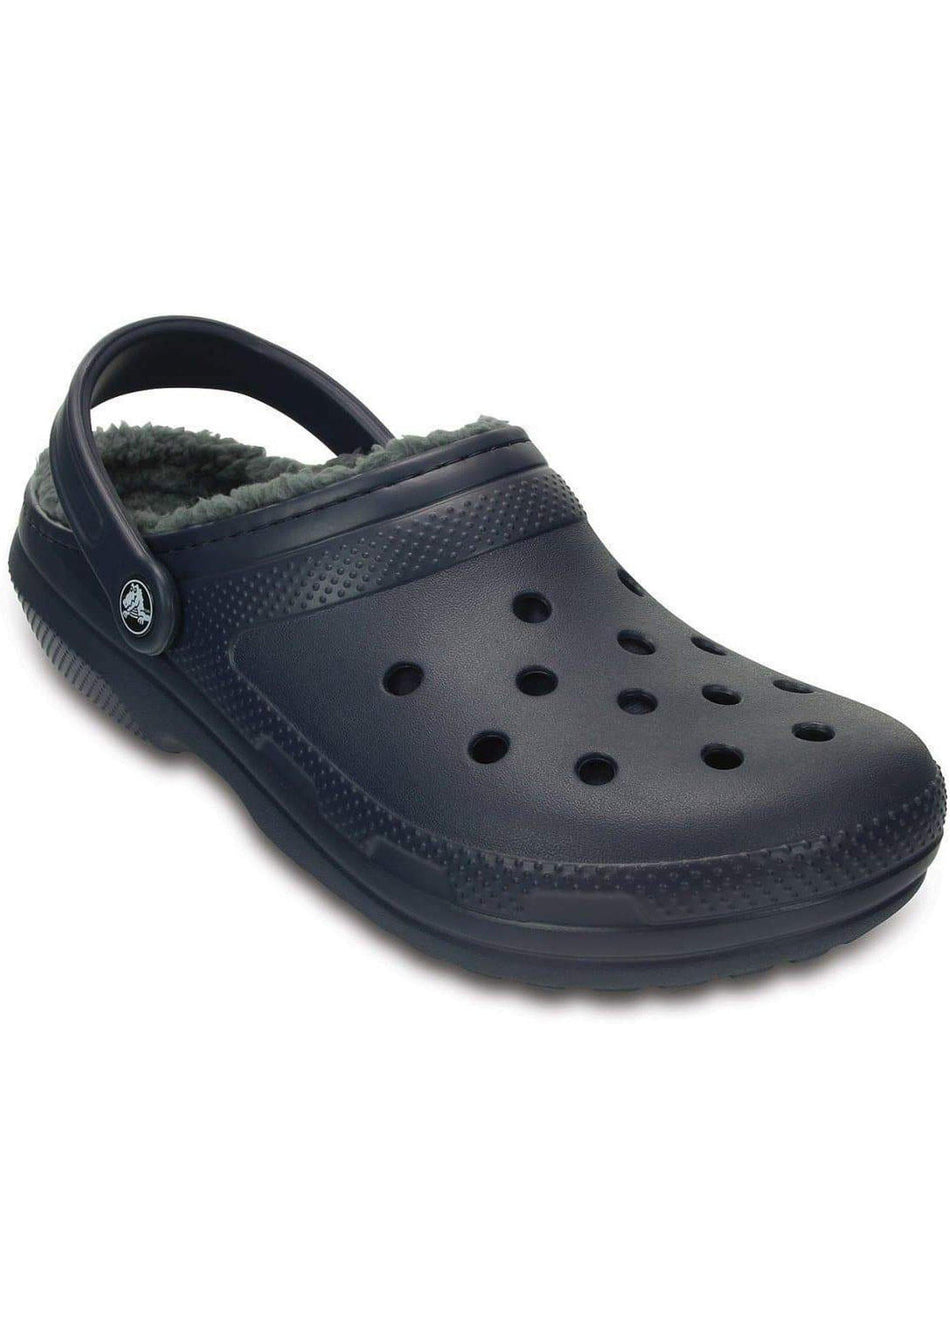 classic lined clog CROCS - Vittorio Citro Boutique